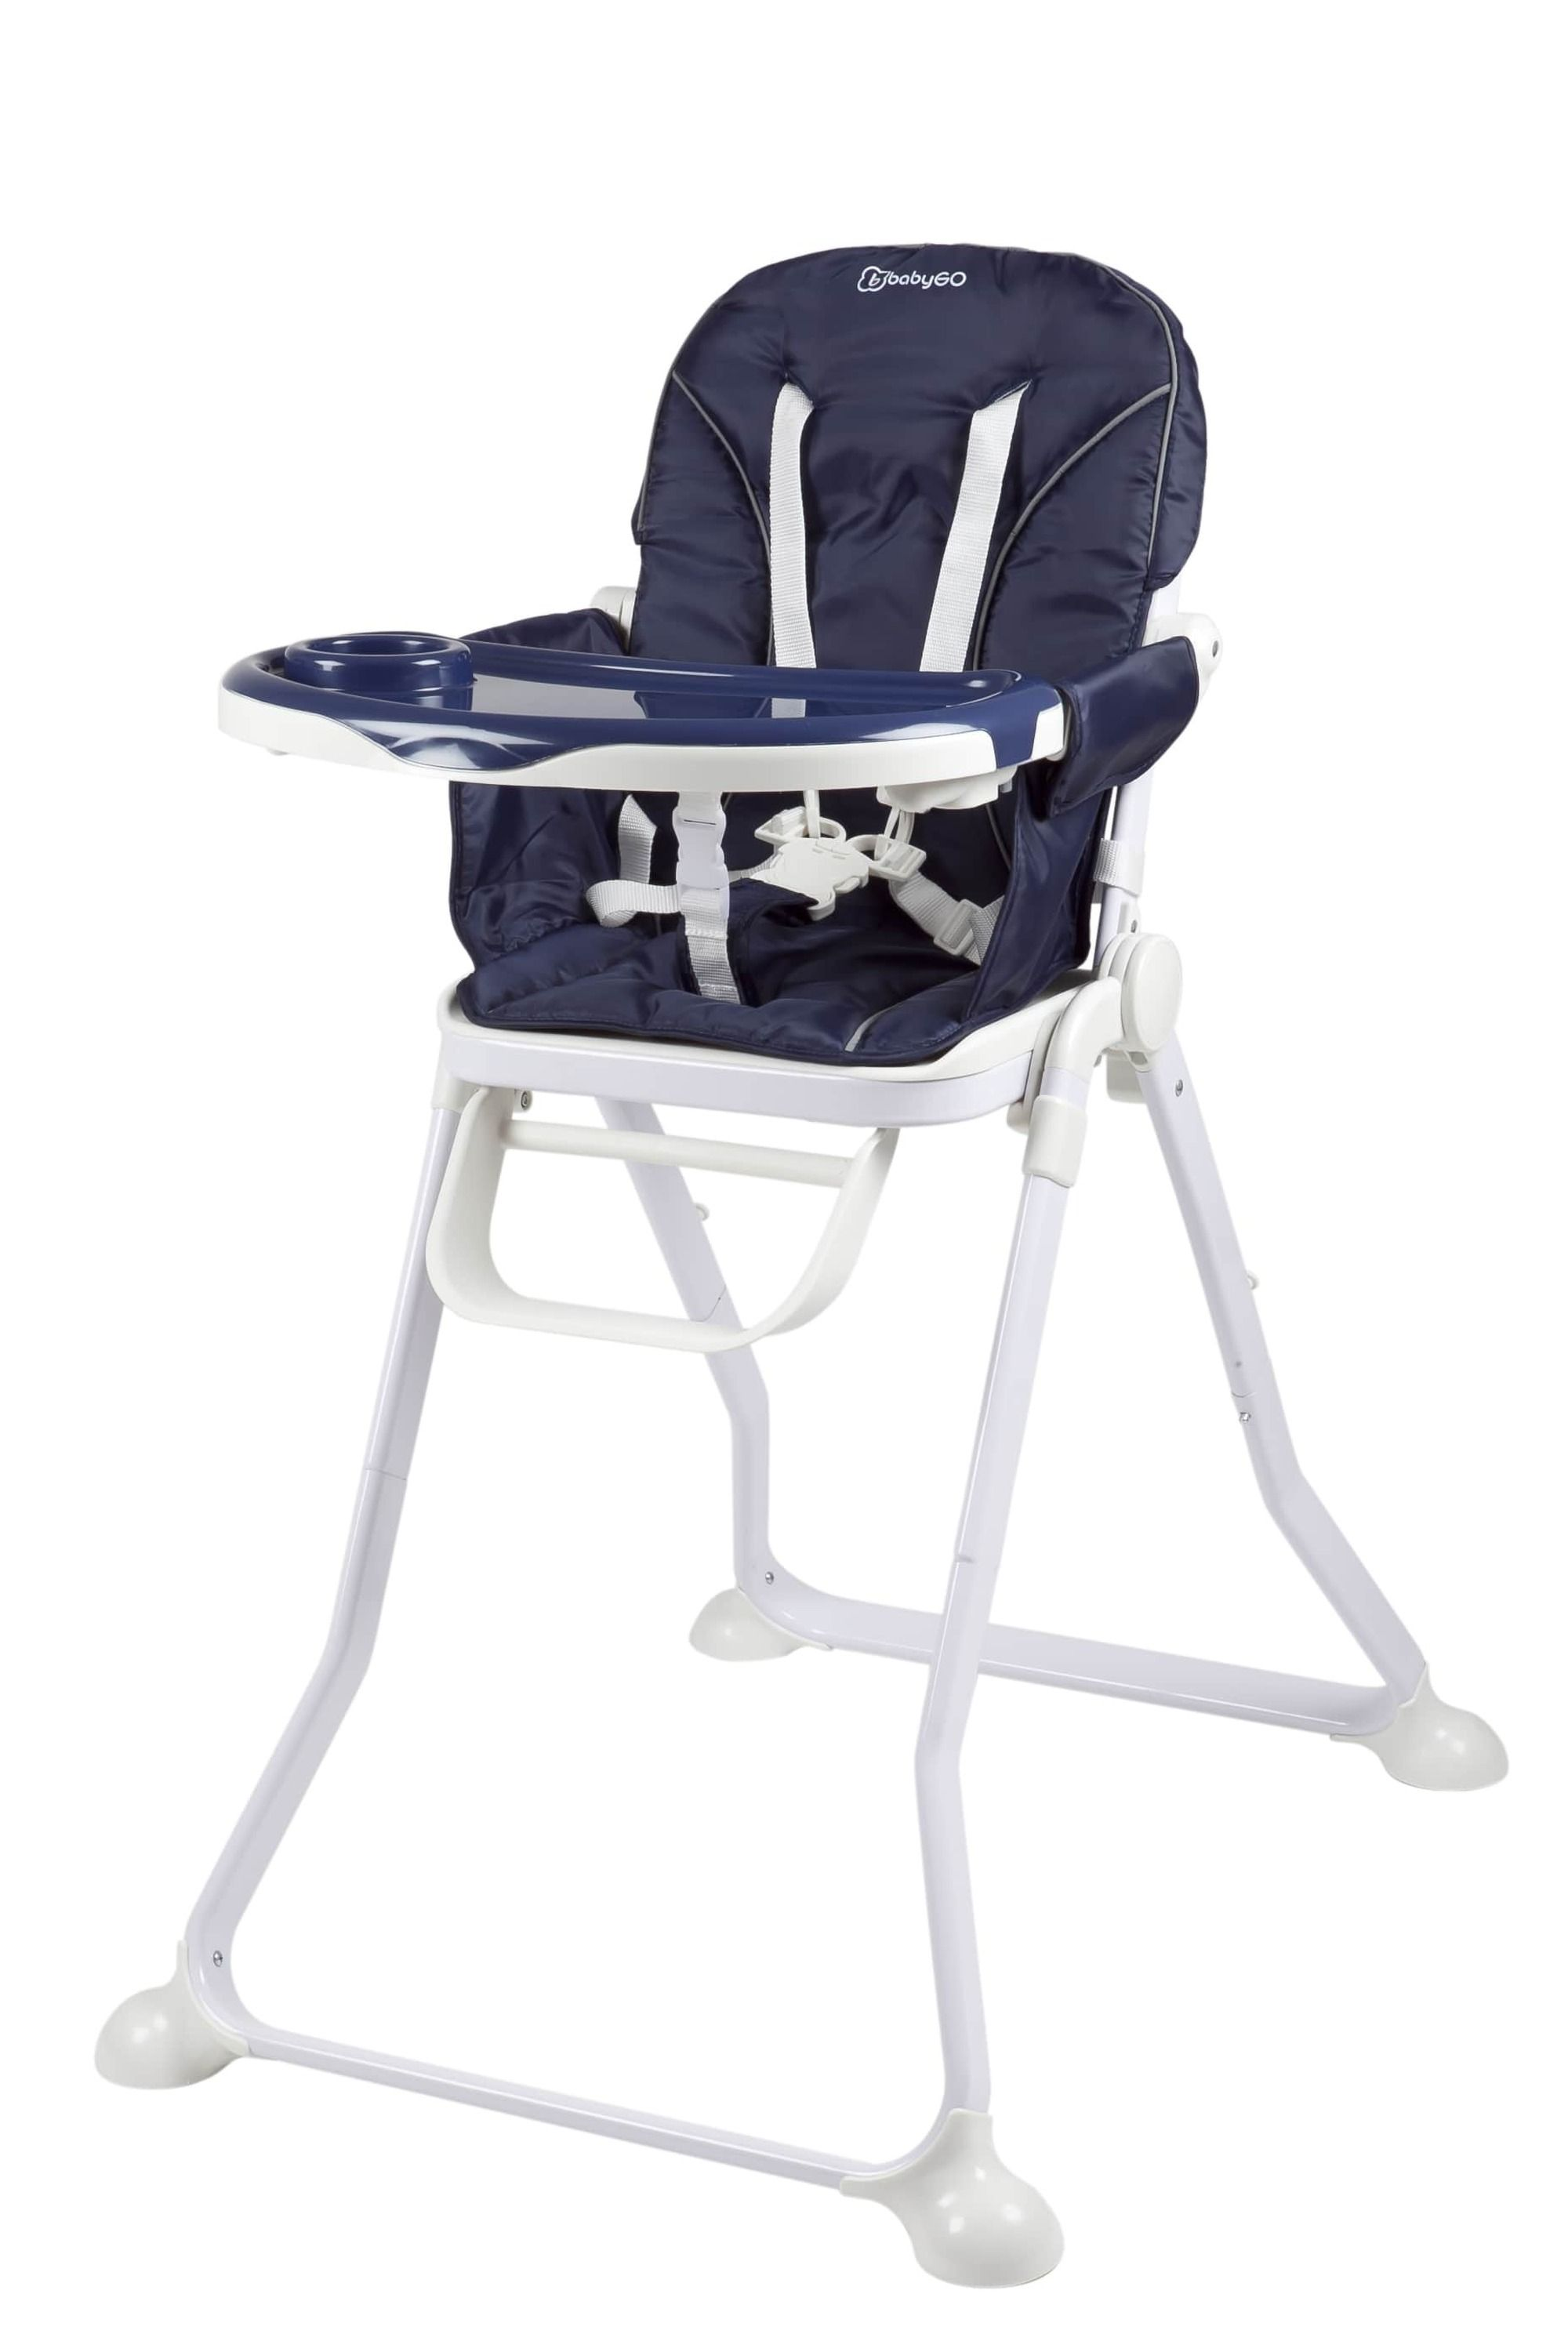 Easy Clean High Chair Article Headline Home Items For Rent In Malta Chairs For Rent